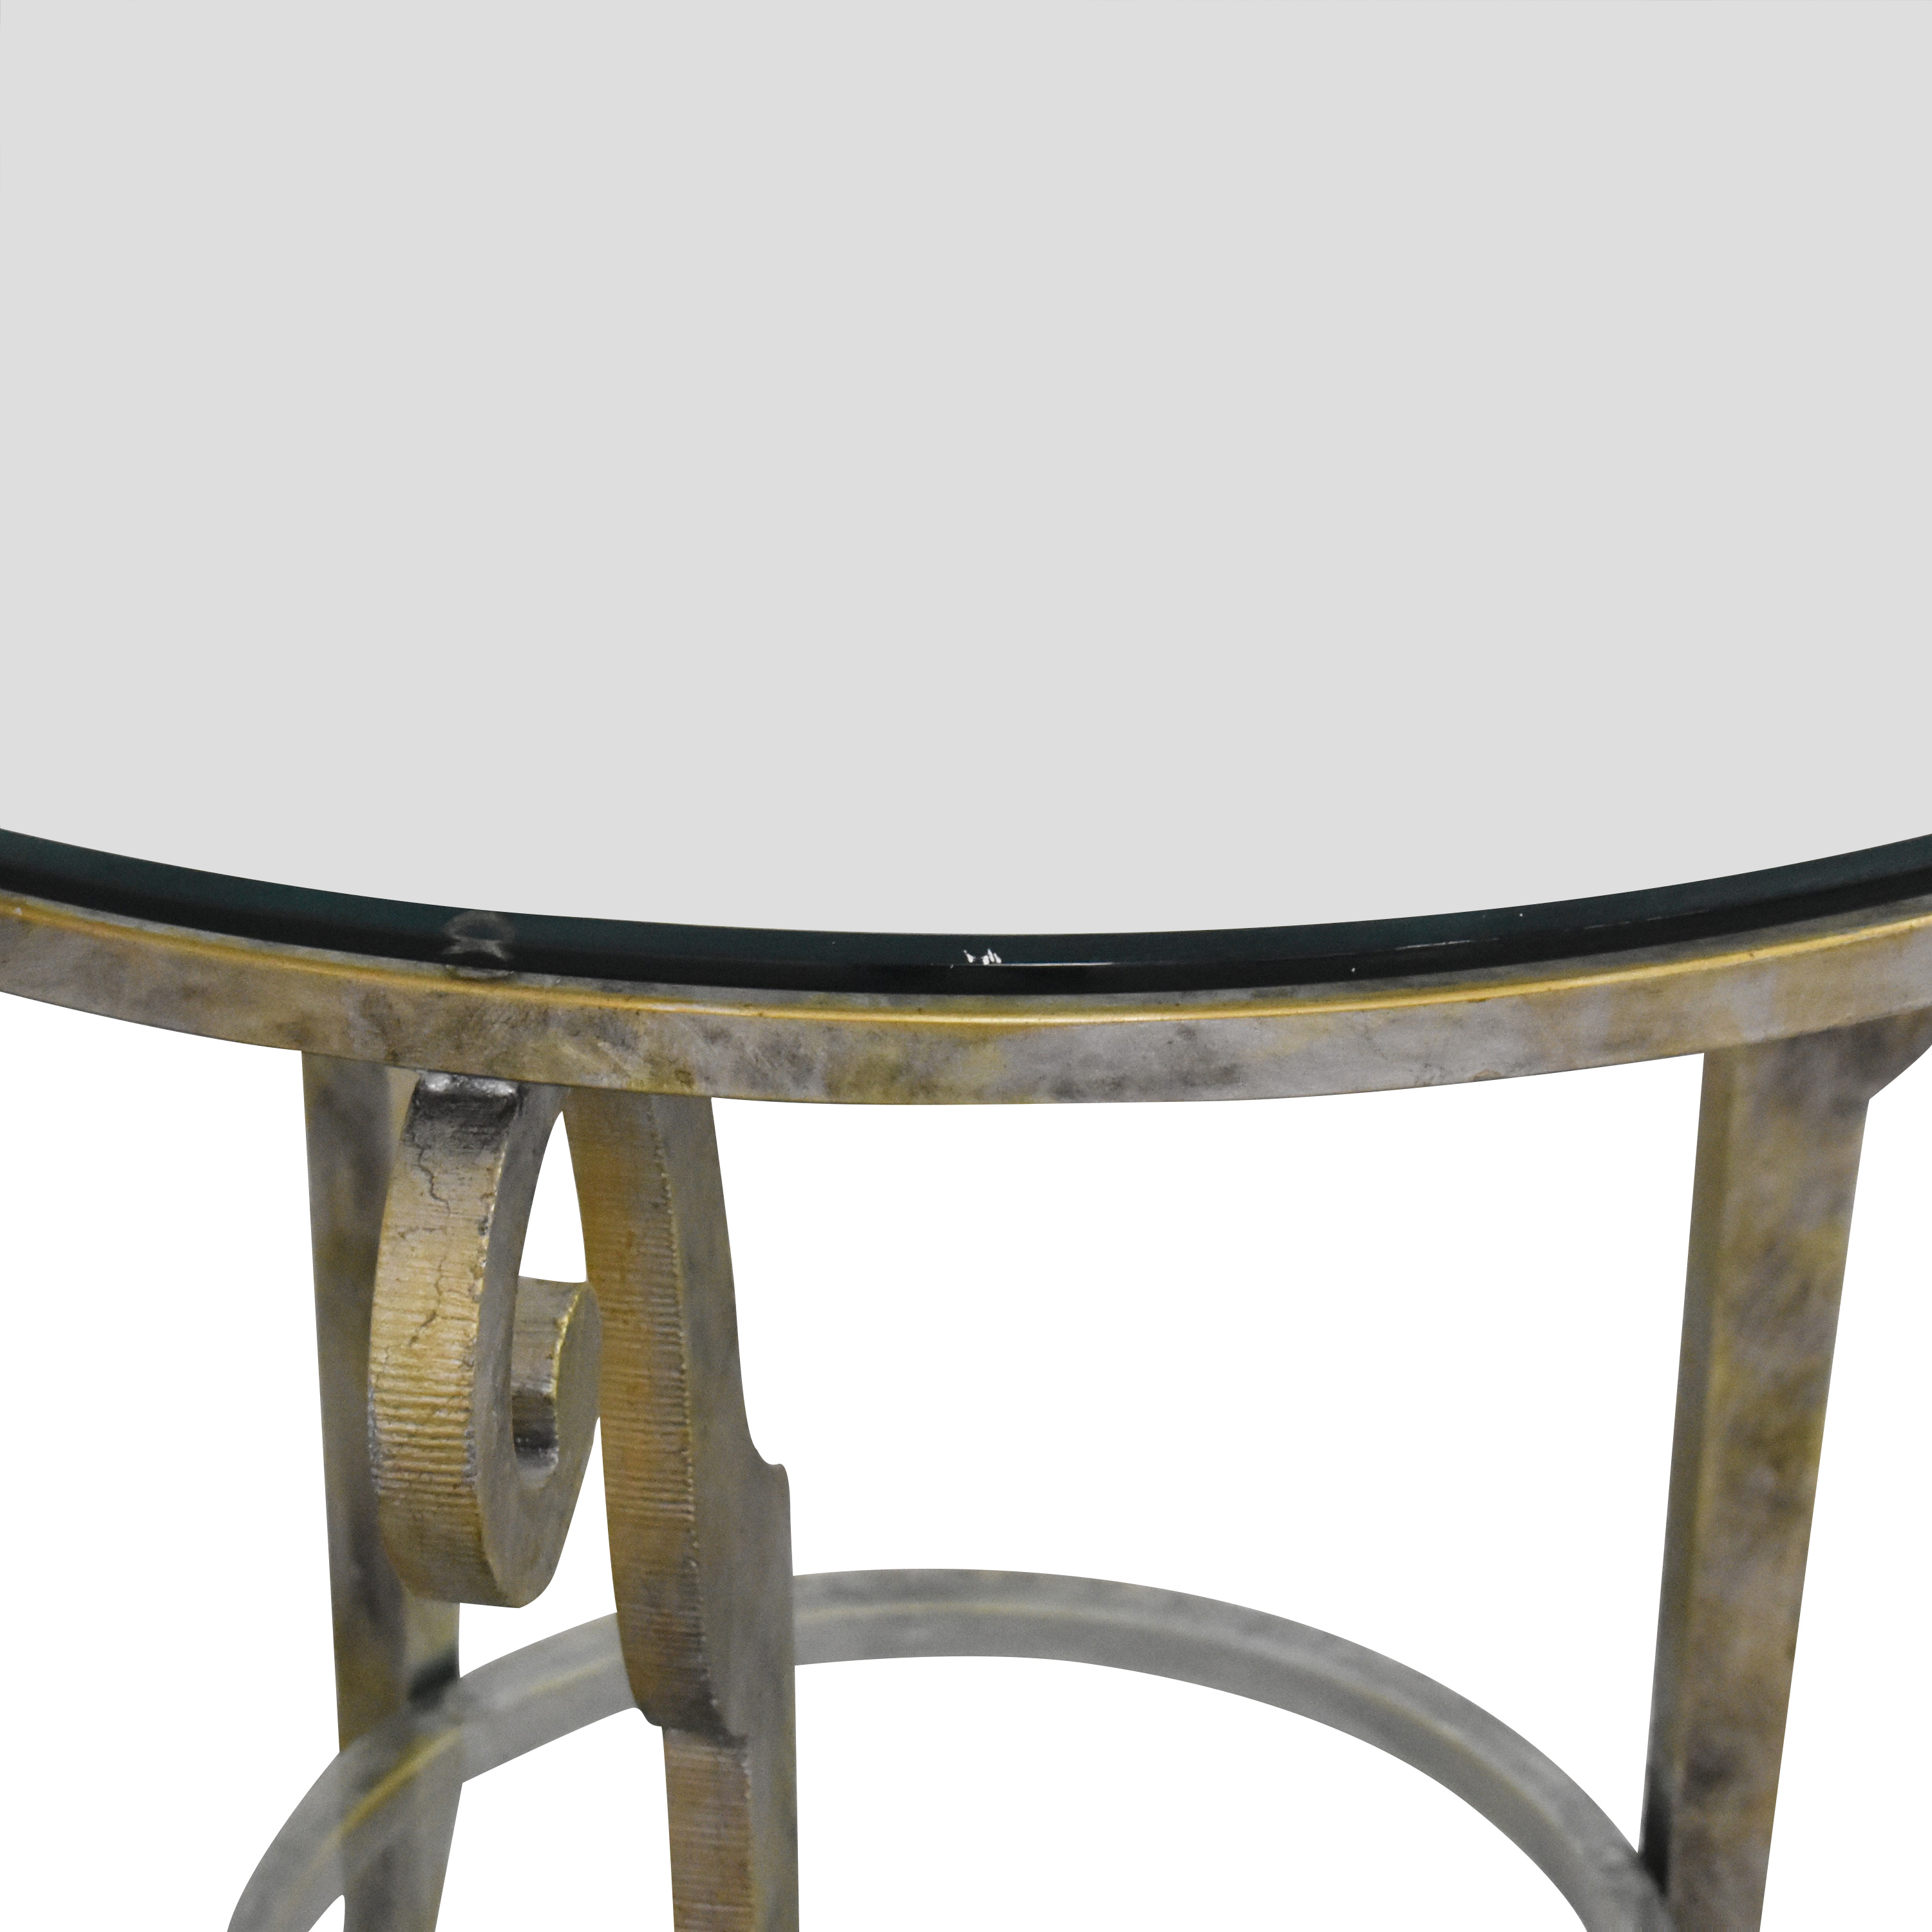 Ethan Allen Round End Table / Accent Tables